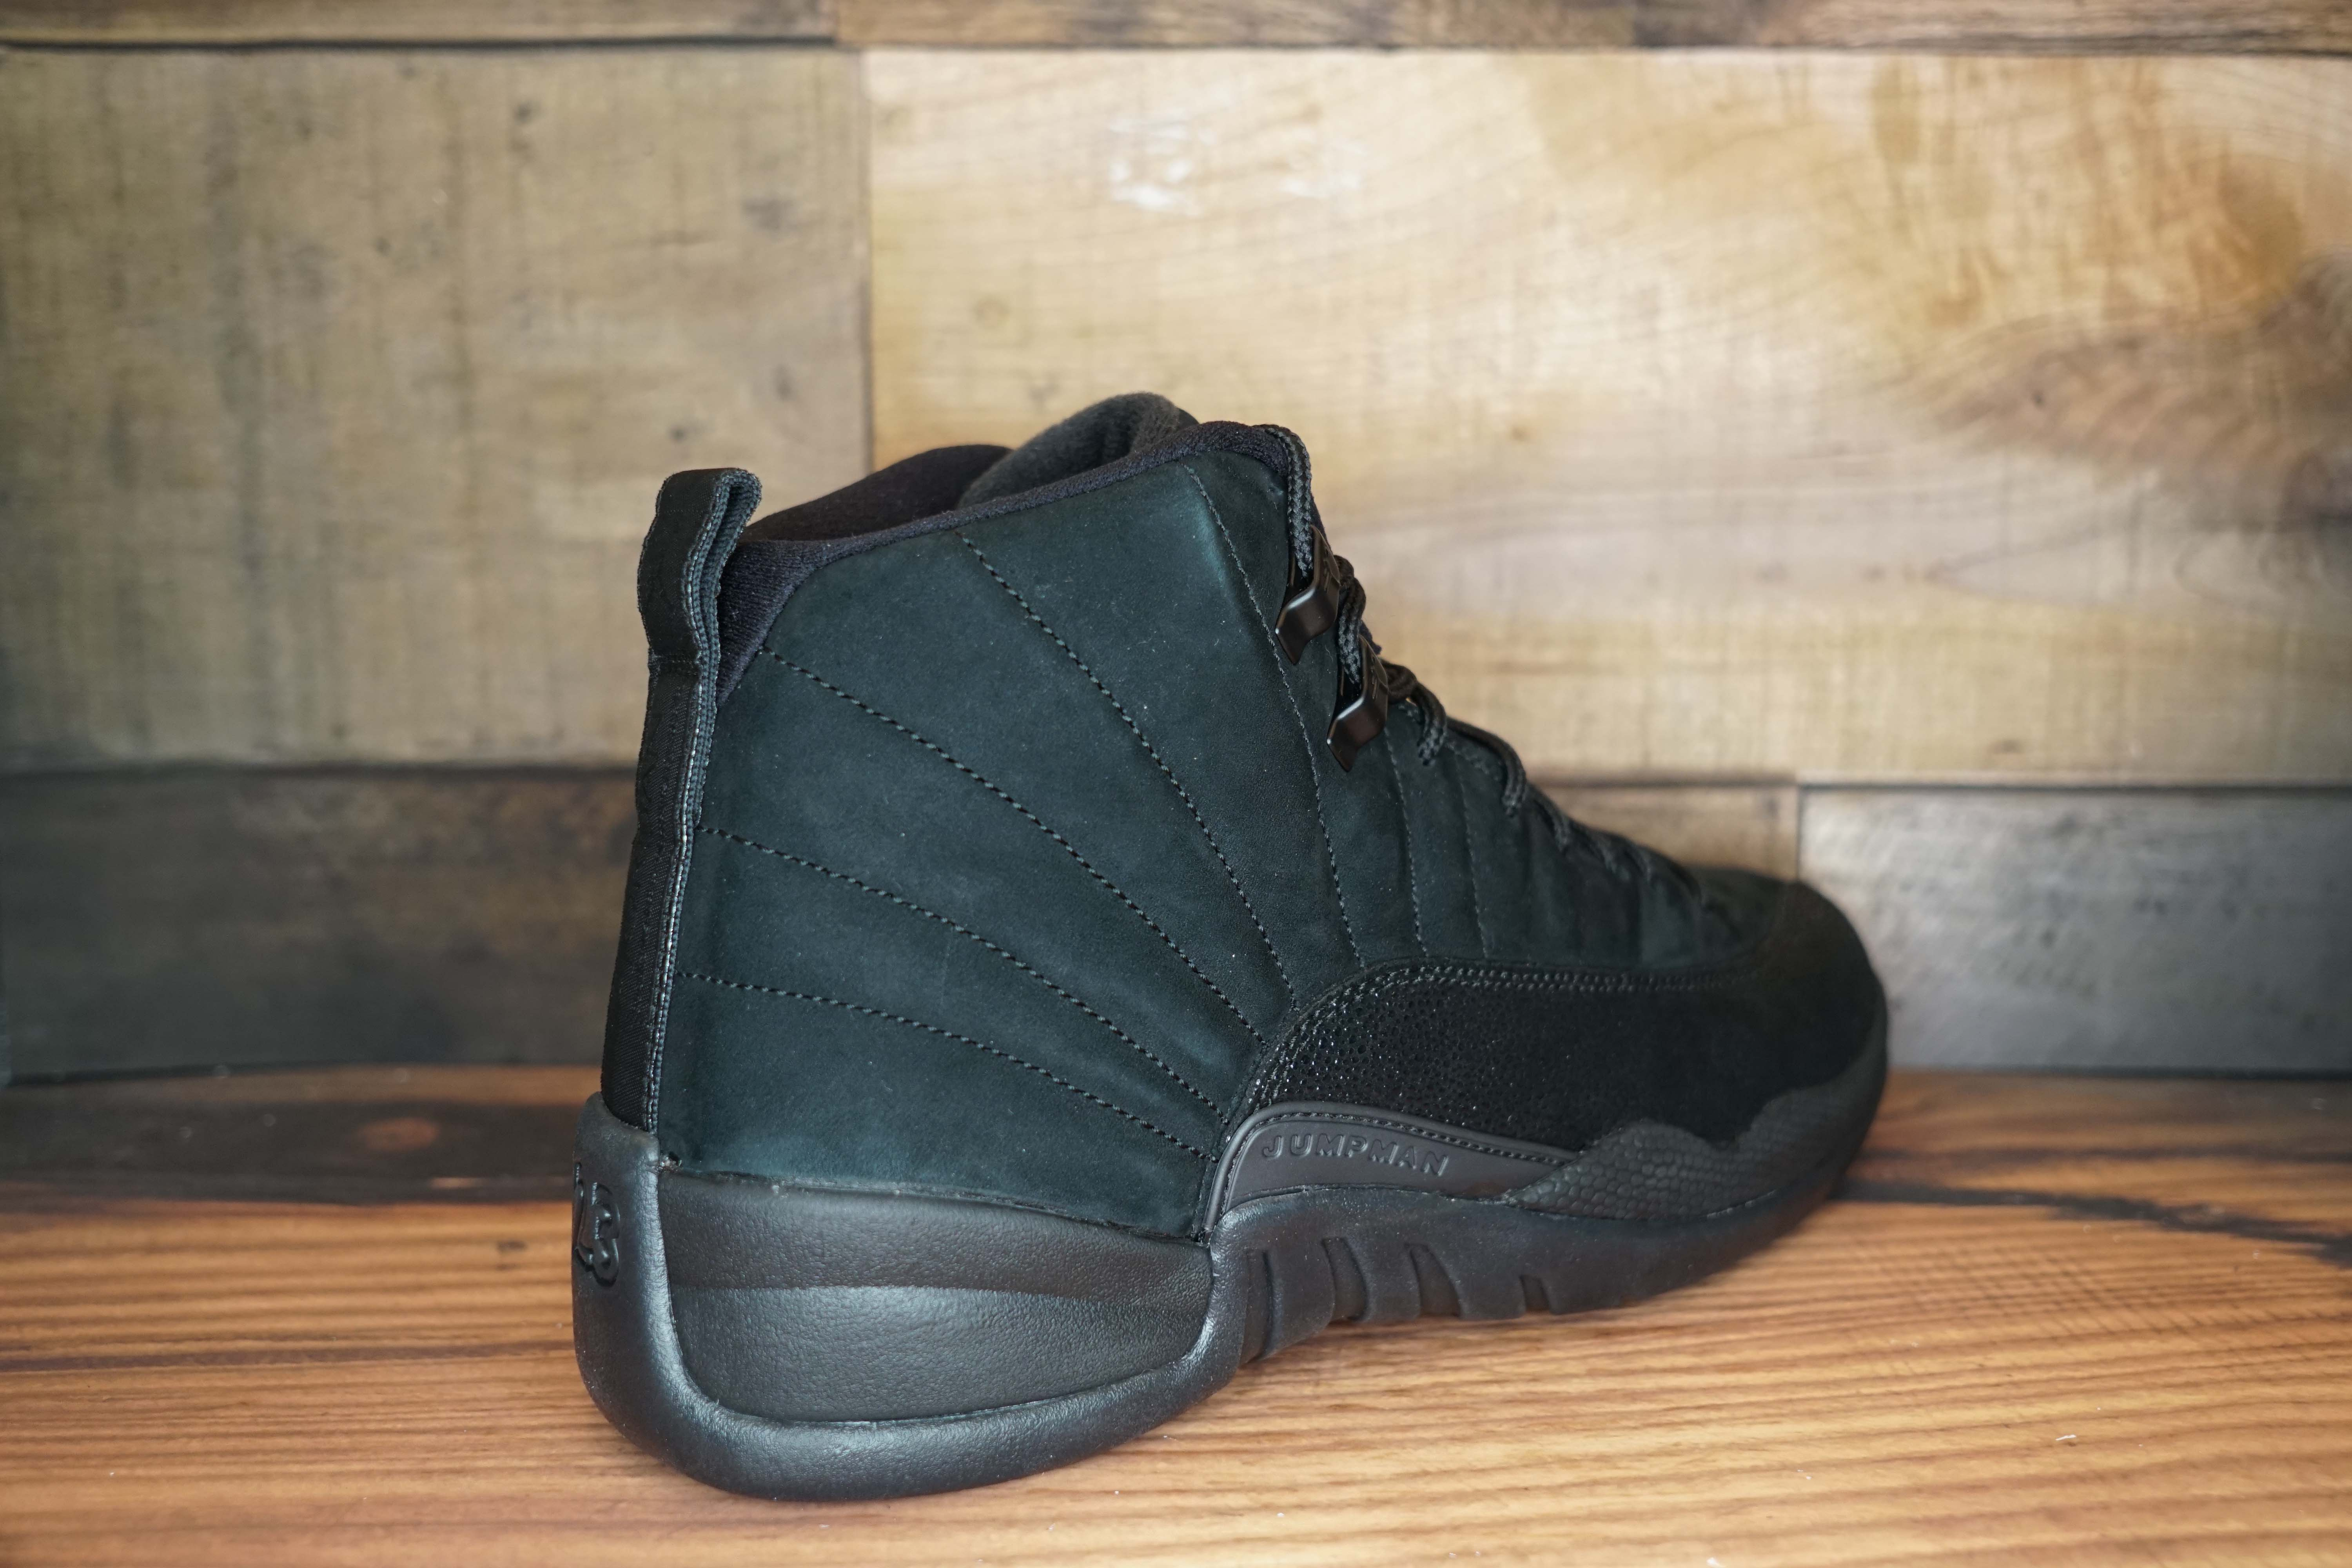 ddf5c5ec8c4a Air Jordan 12 Retro